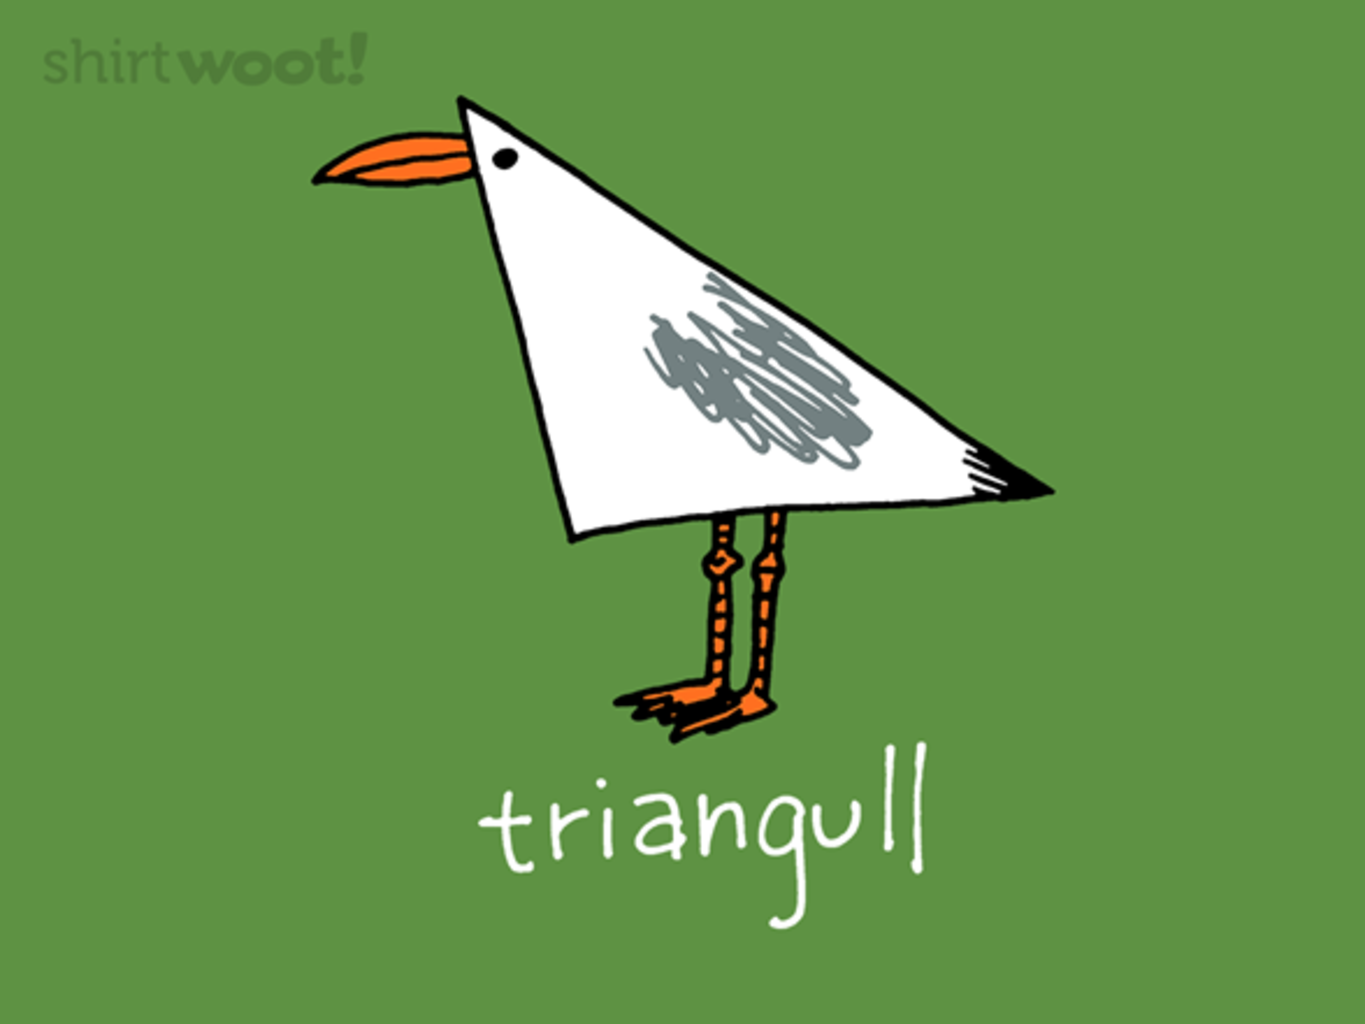 Woot!: Triangull - $8.00 + $5 standard shipping